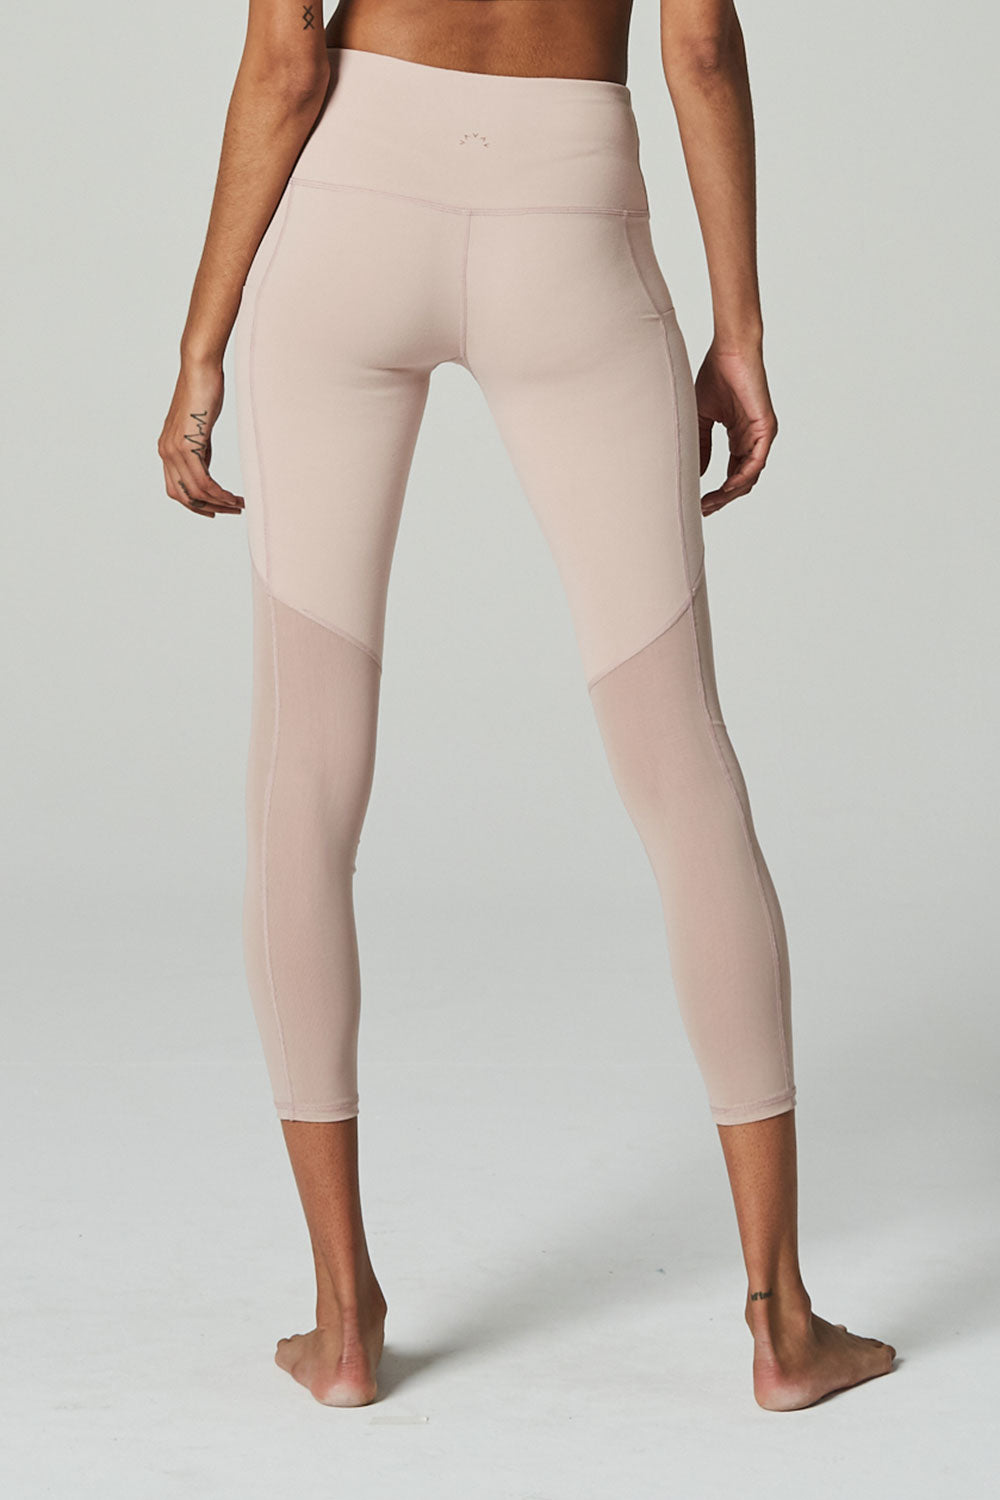 Varley Clyde Tight - Sculptique